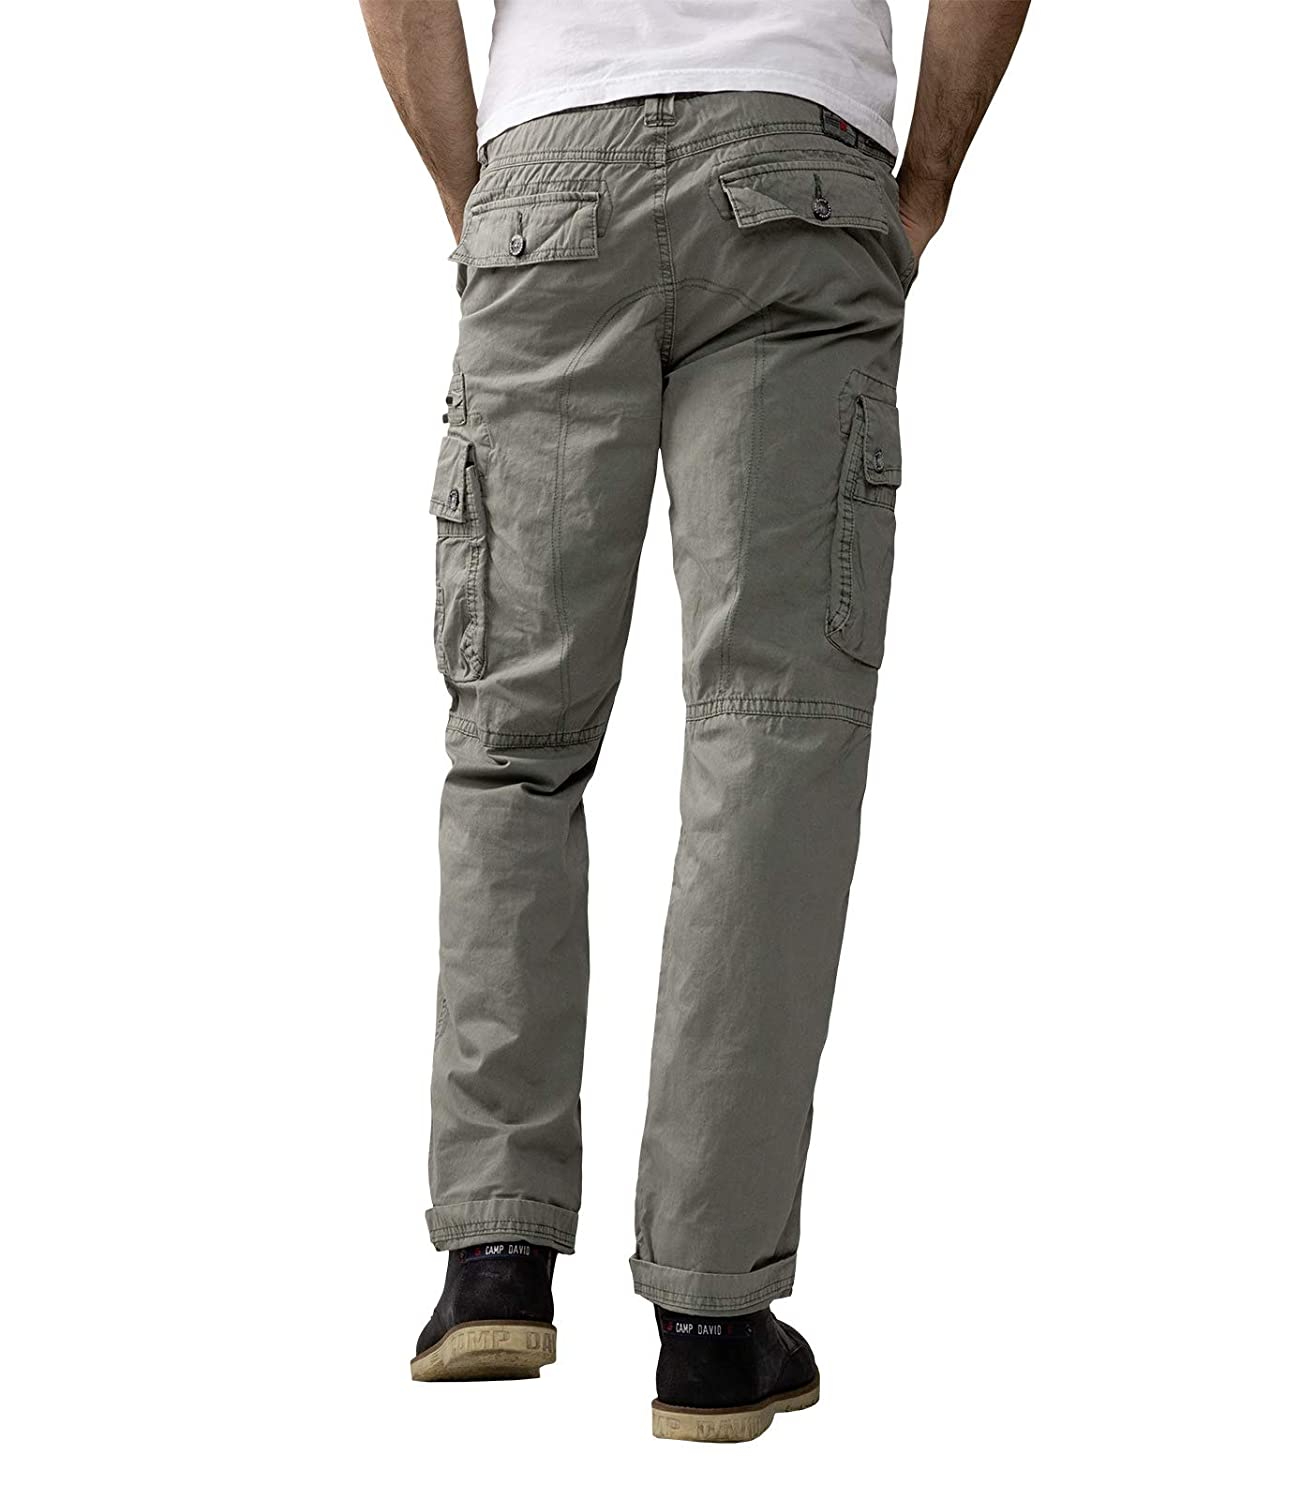 on sale buy cheap new concept Camp David Cargohose mit Used-Waschung: Amazon.de: Bekleidung